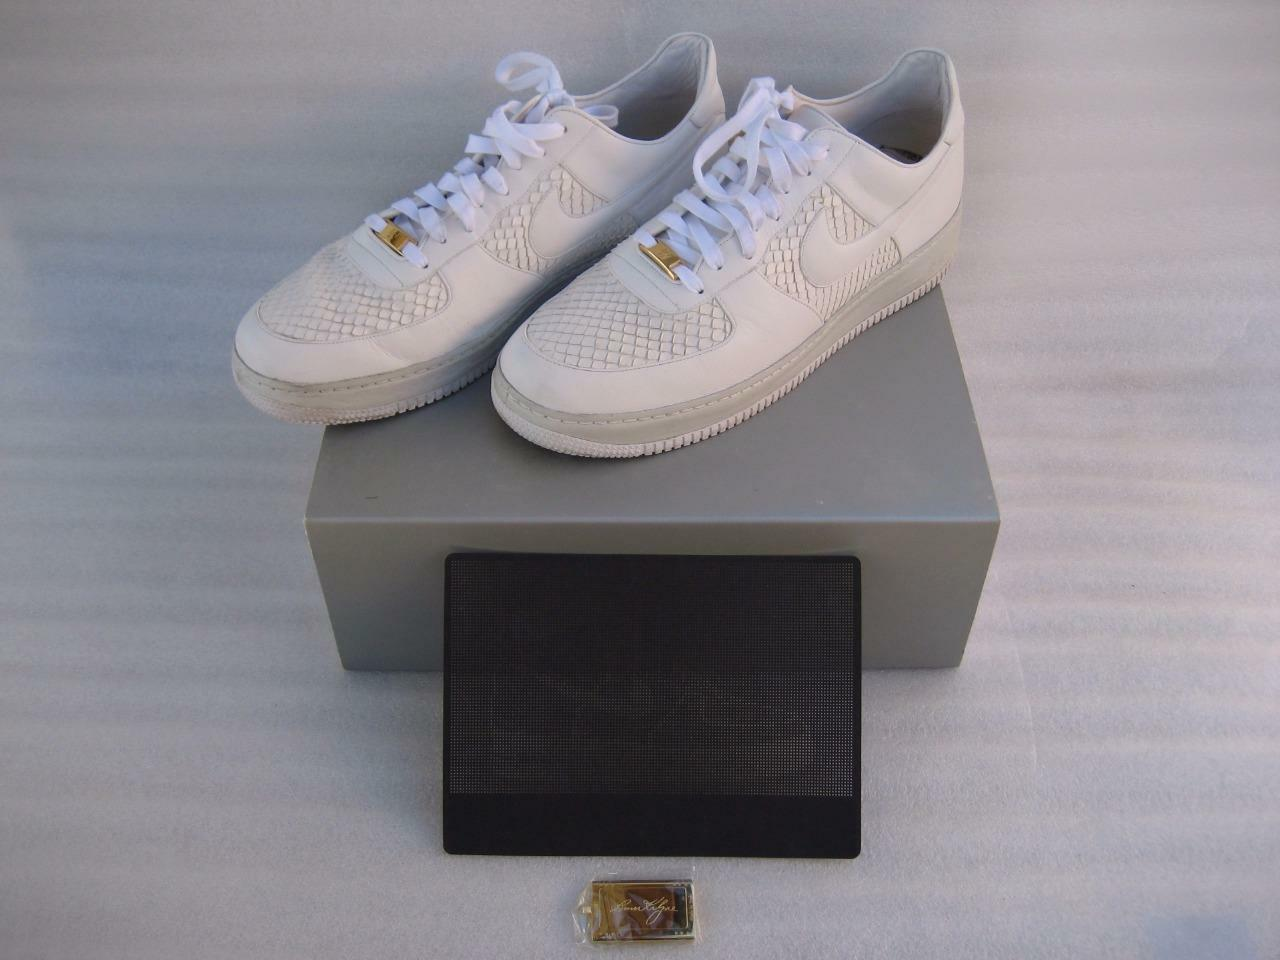 MENS NIKE AIR FORCE 1 LUX WHITE ANACONDA LEATHER SHOES US SIZE 11 315583 111